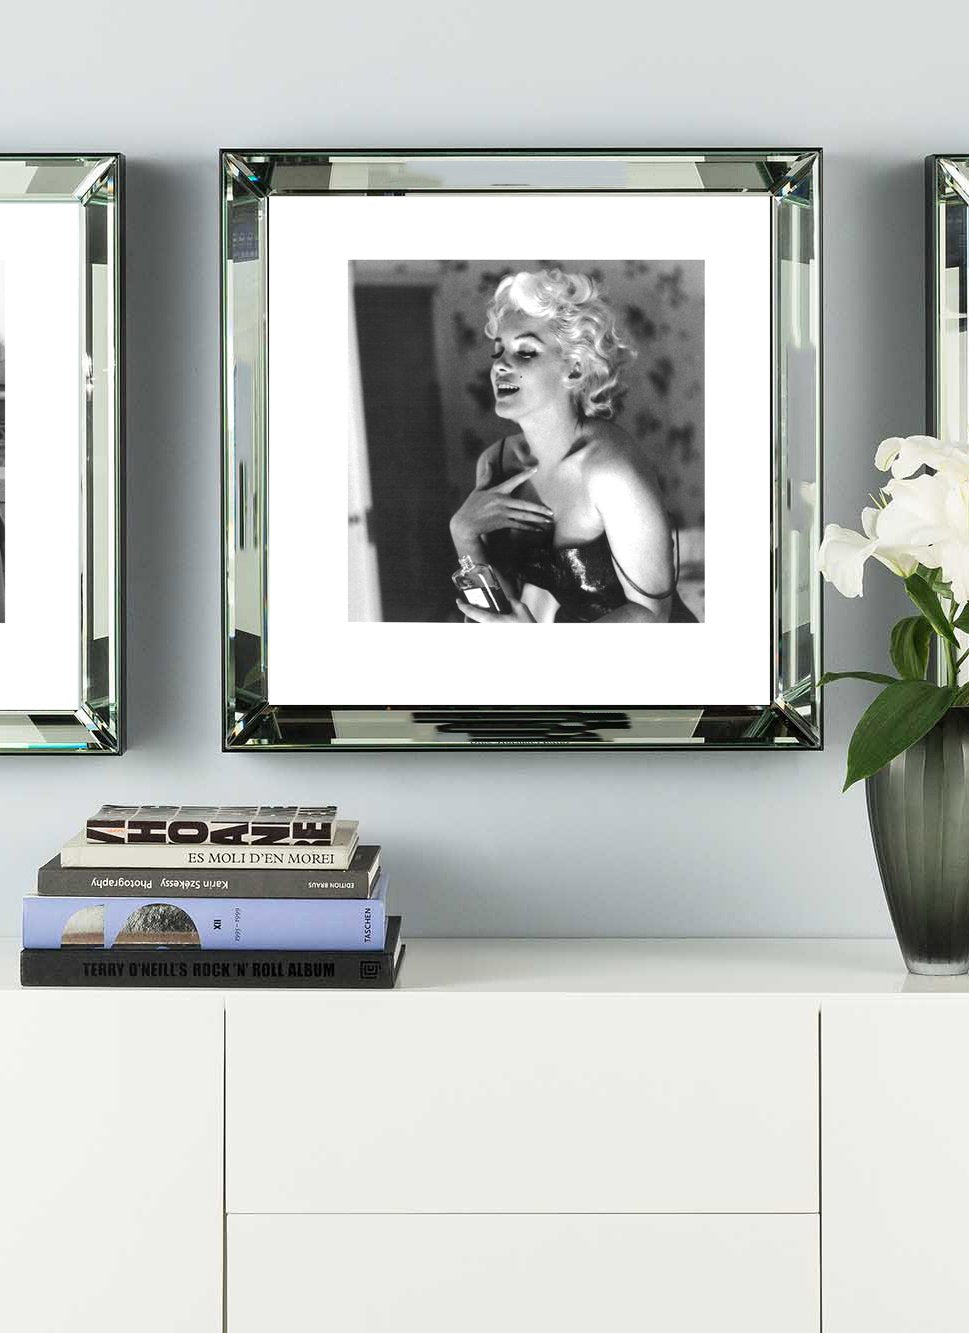 Marilyn Monroe Pose Mirror Frame Picture